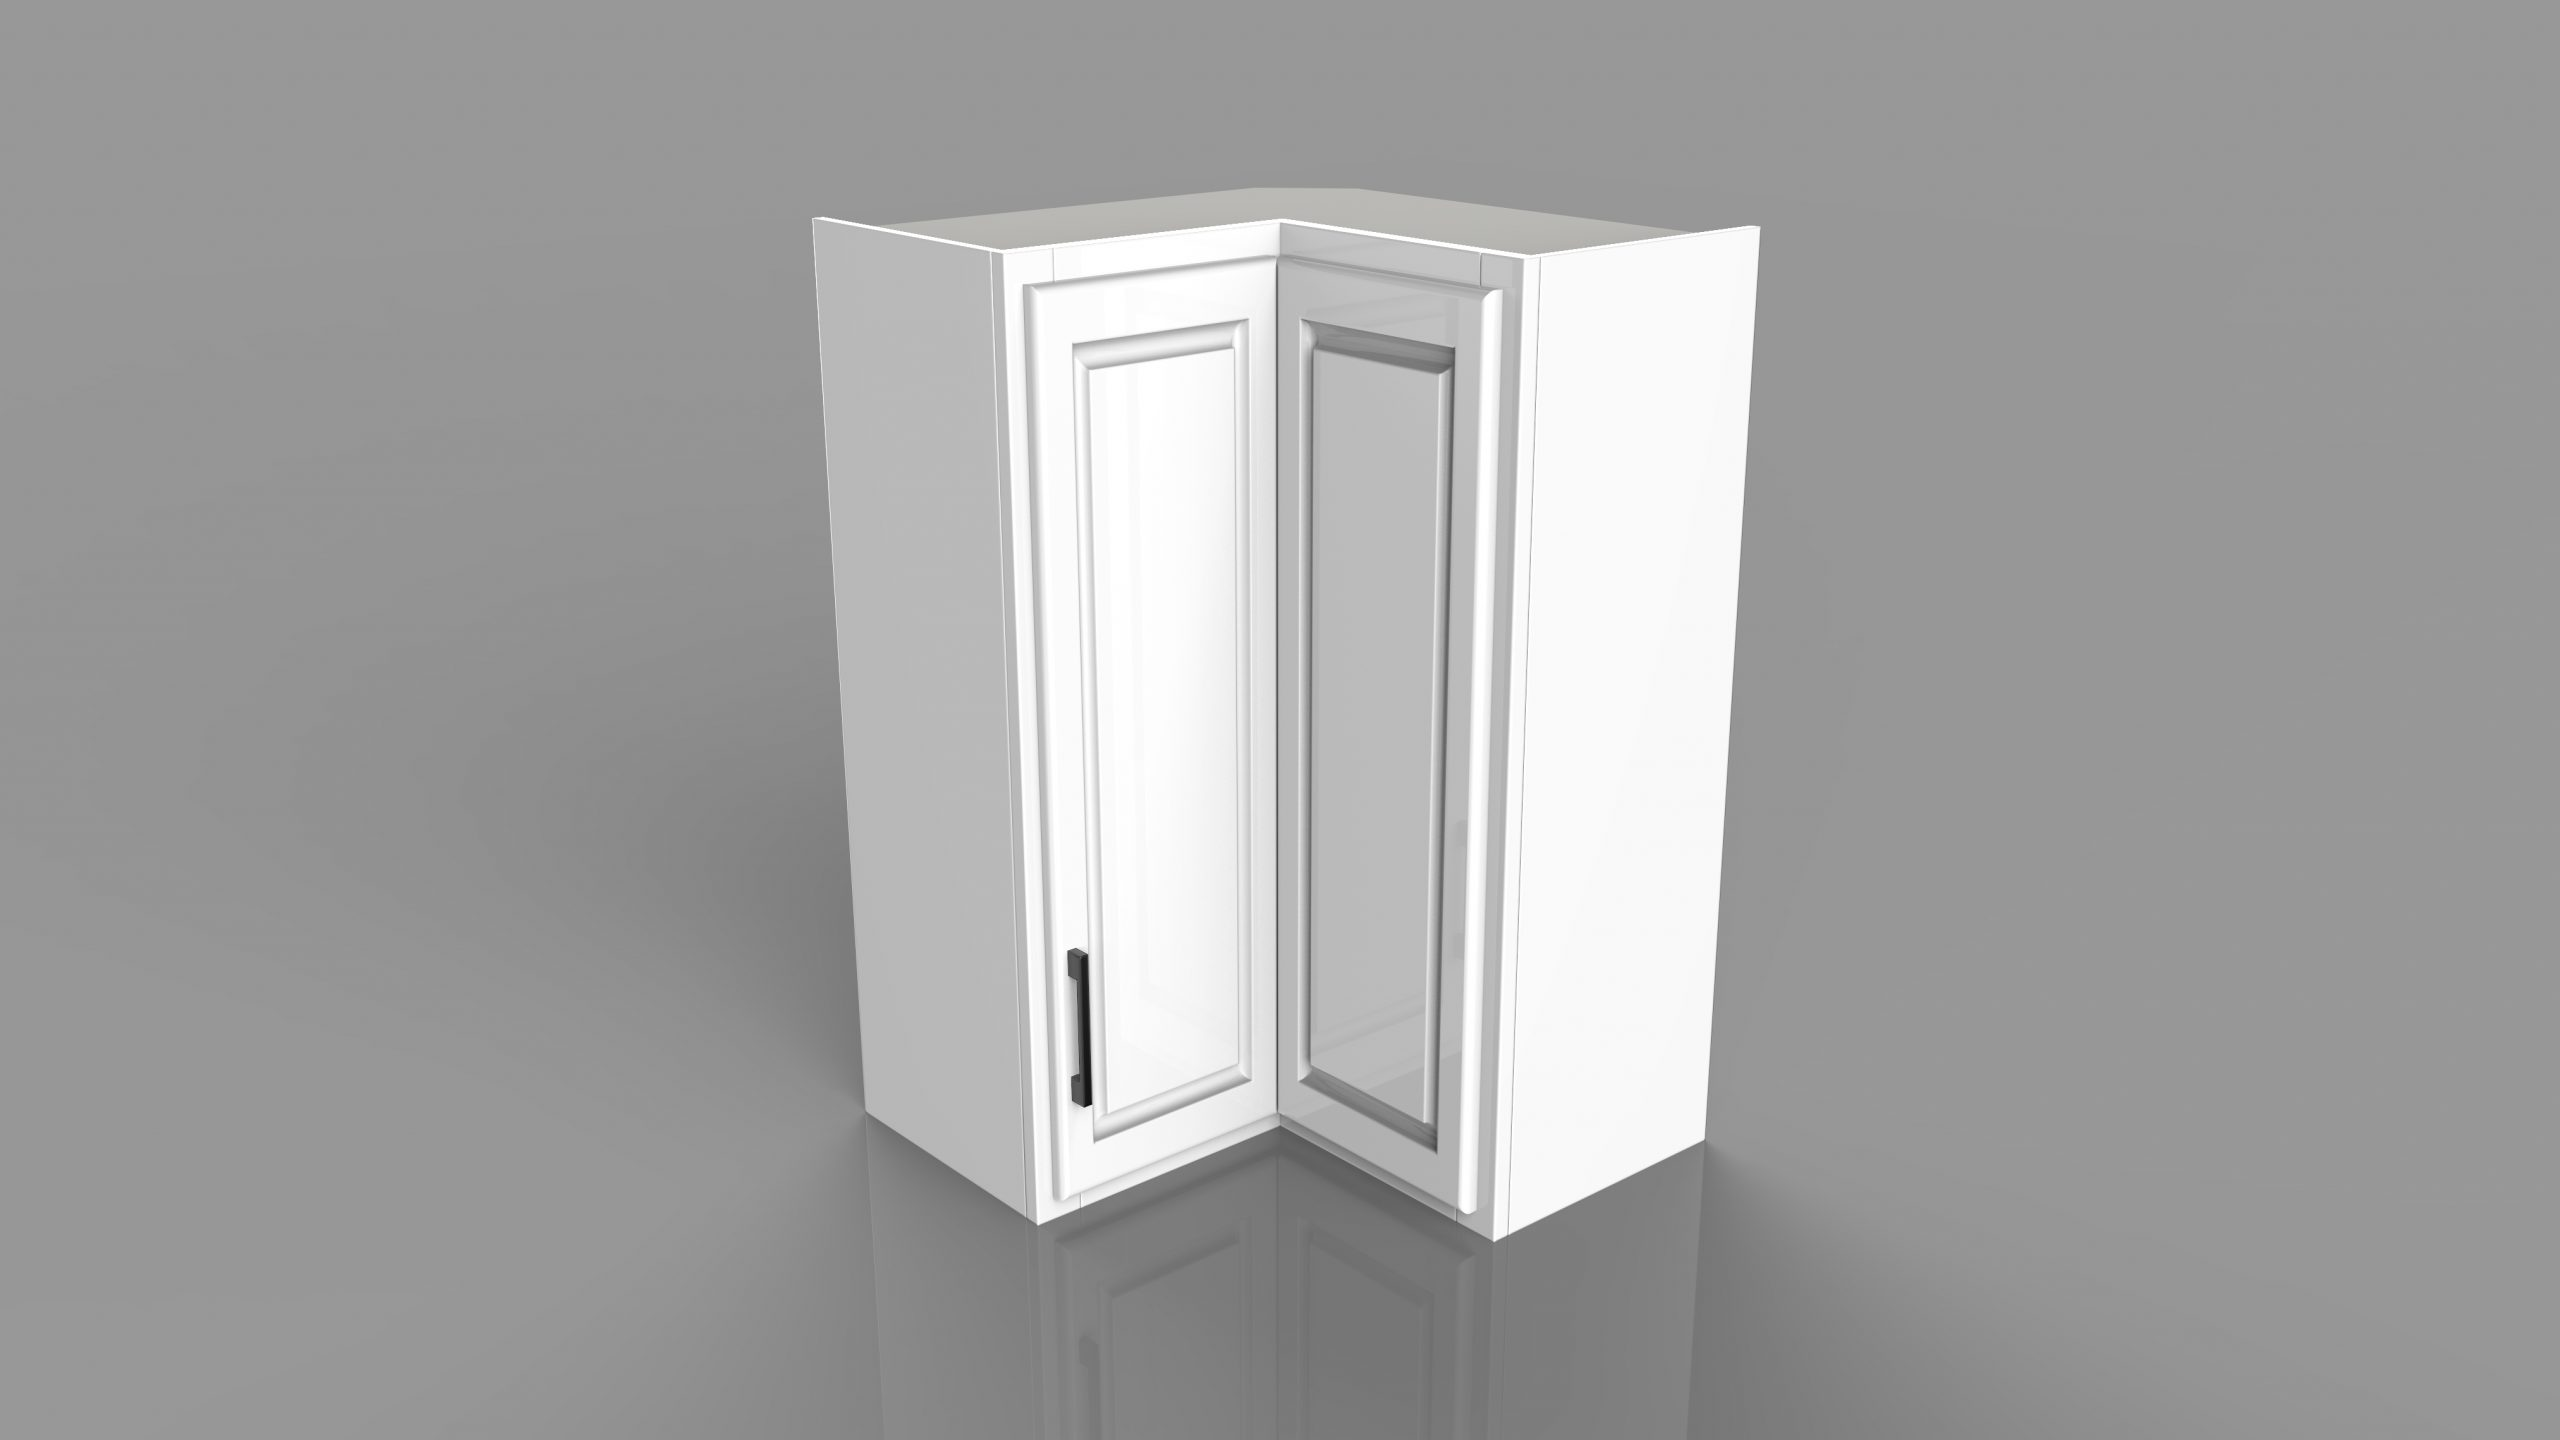 Example of a residential upper corner cabinet